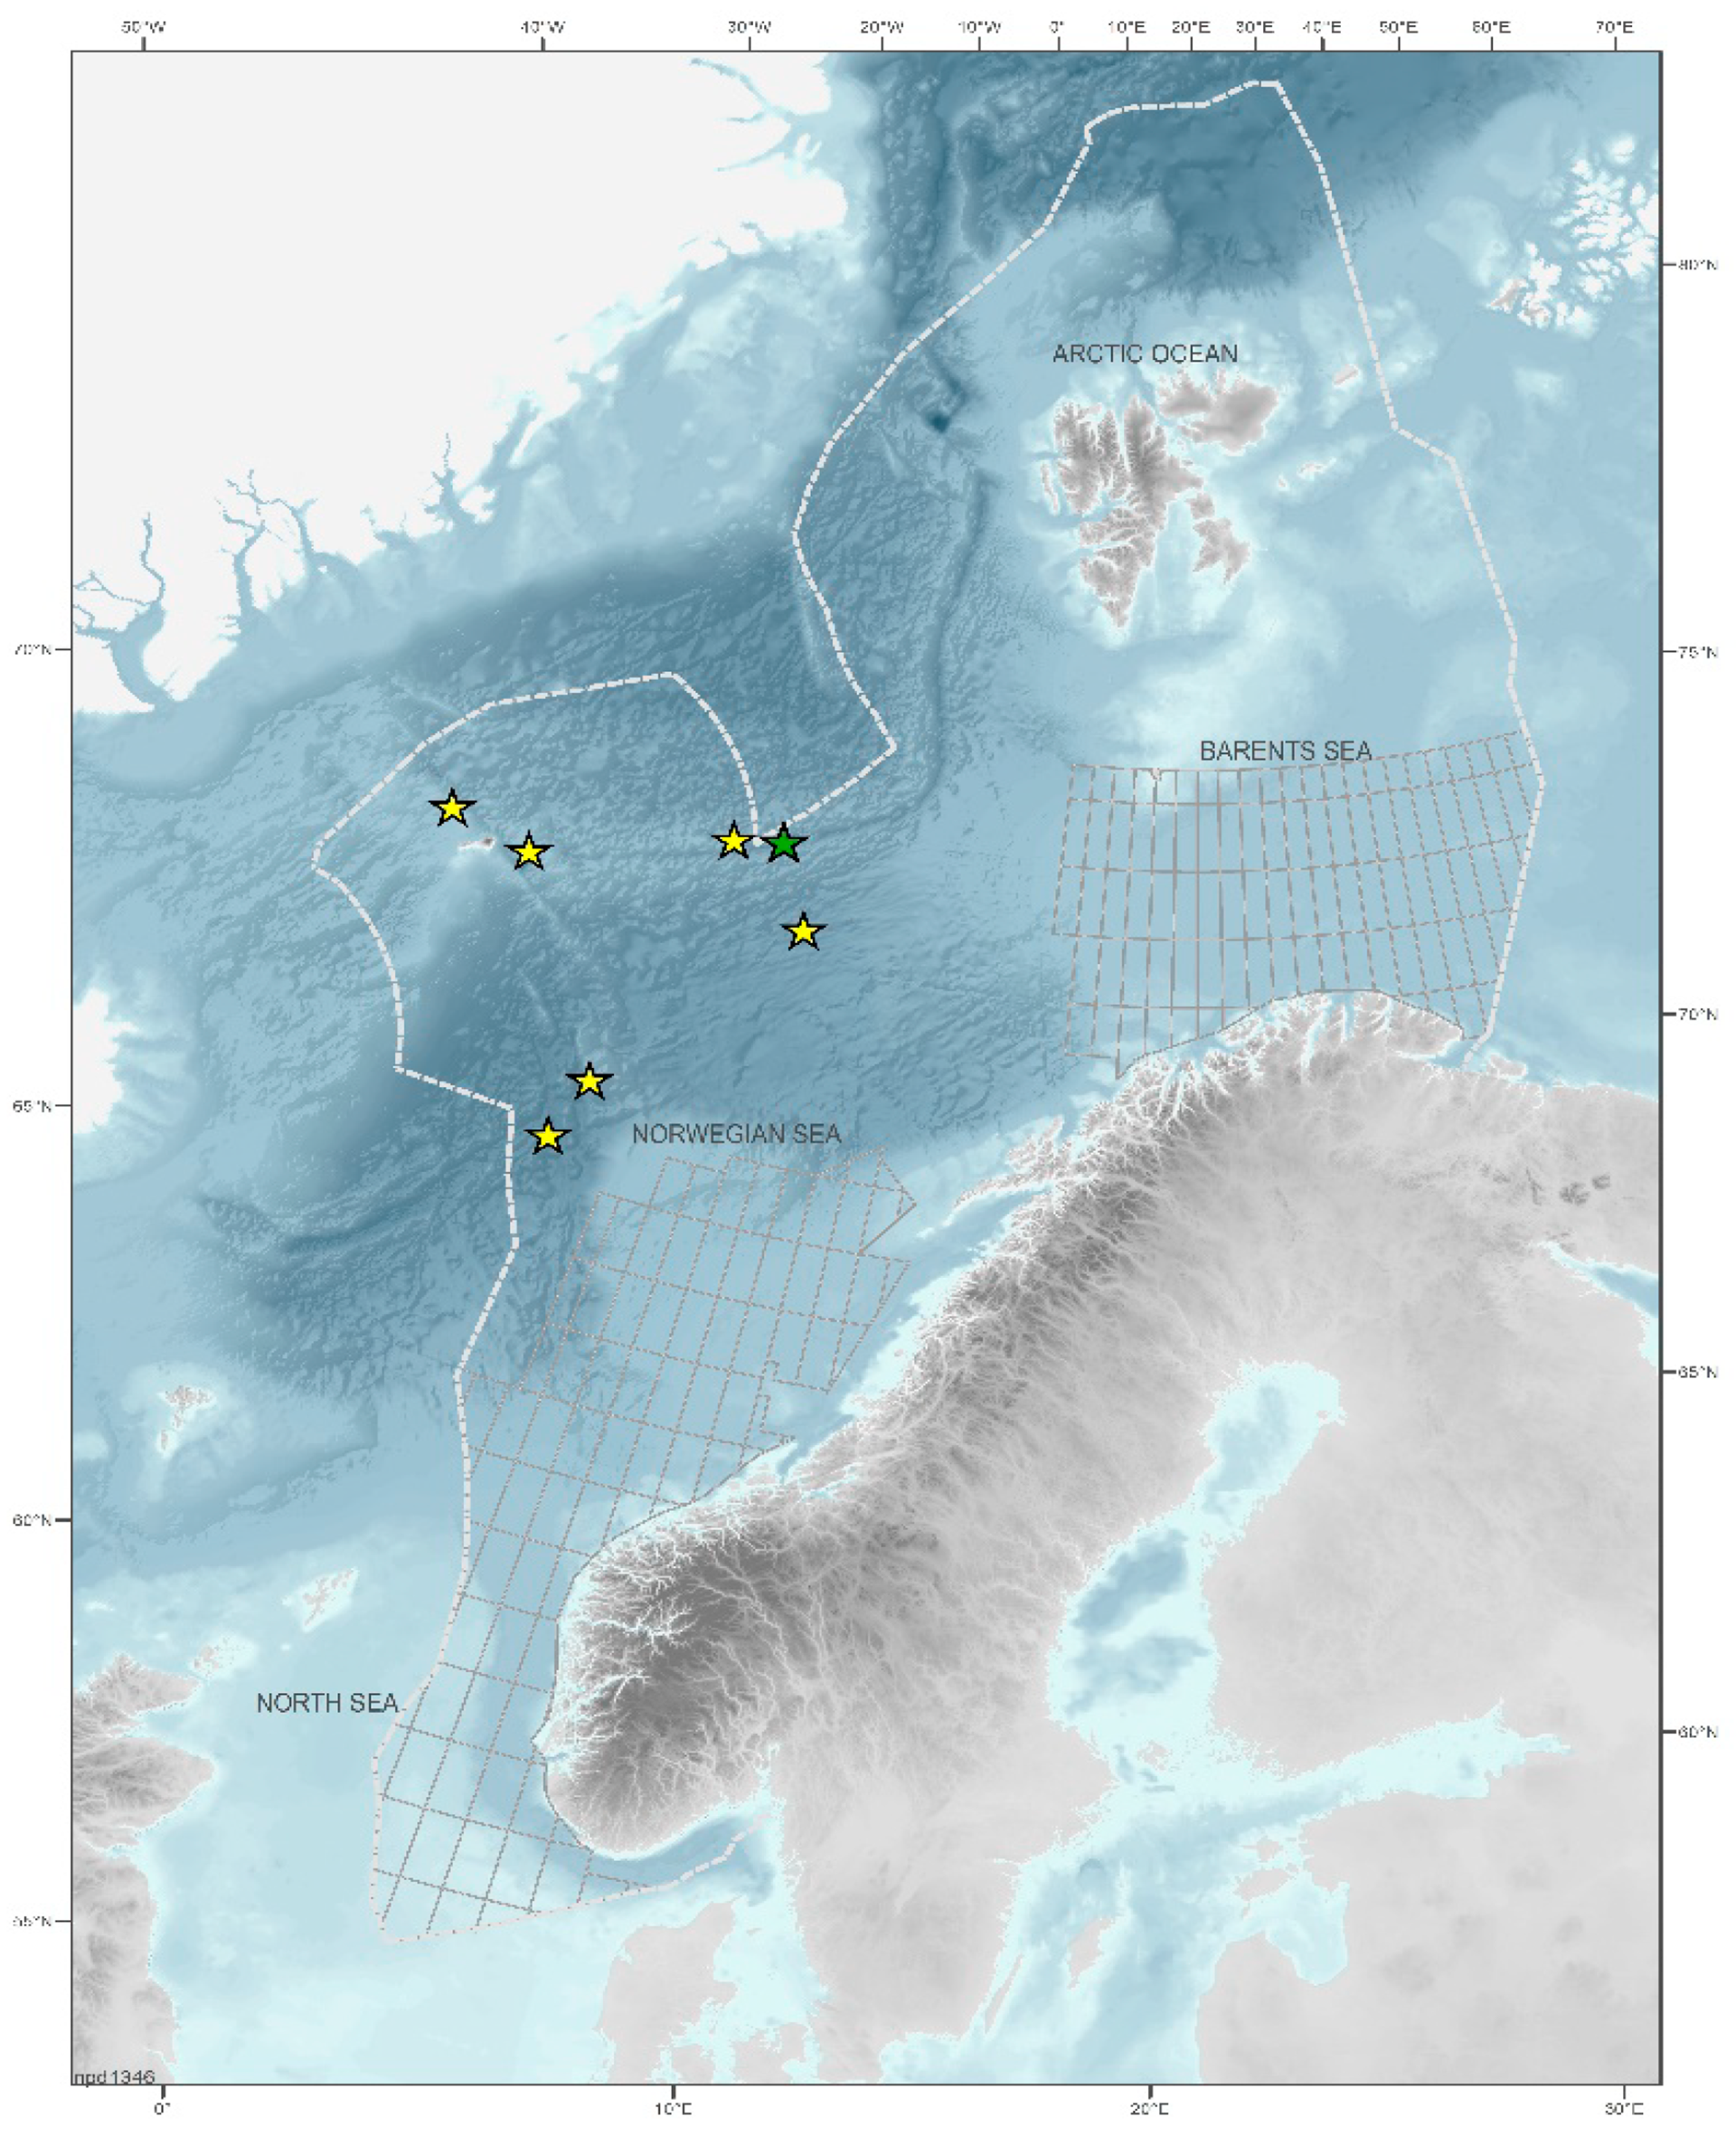 Figure 4-5 Map of the Norwegian Continental Shelf. Areas where the NPD has collected data and mineral samples are marked with stars.